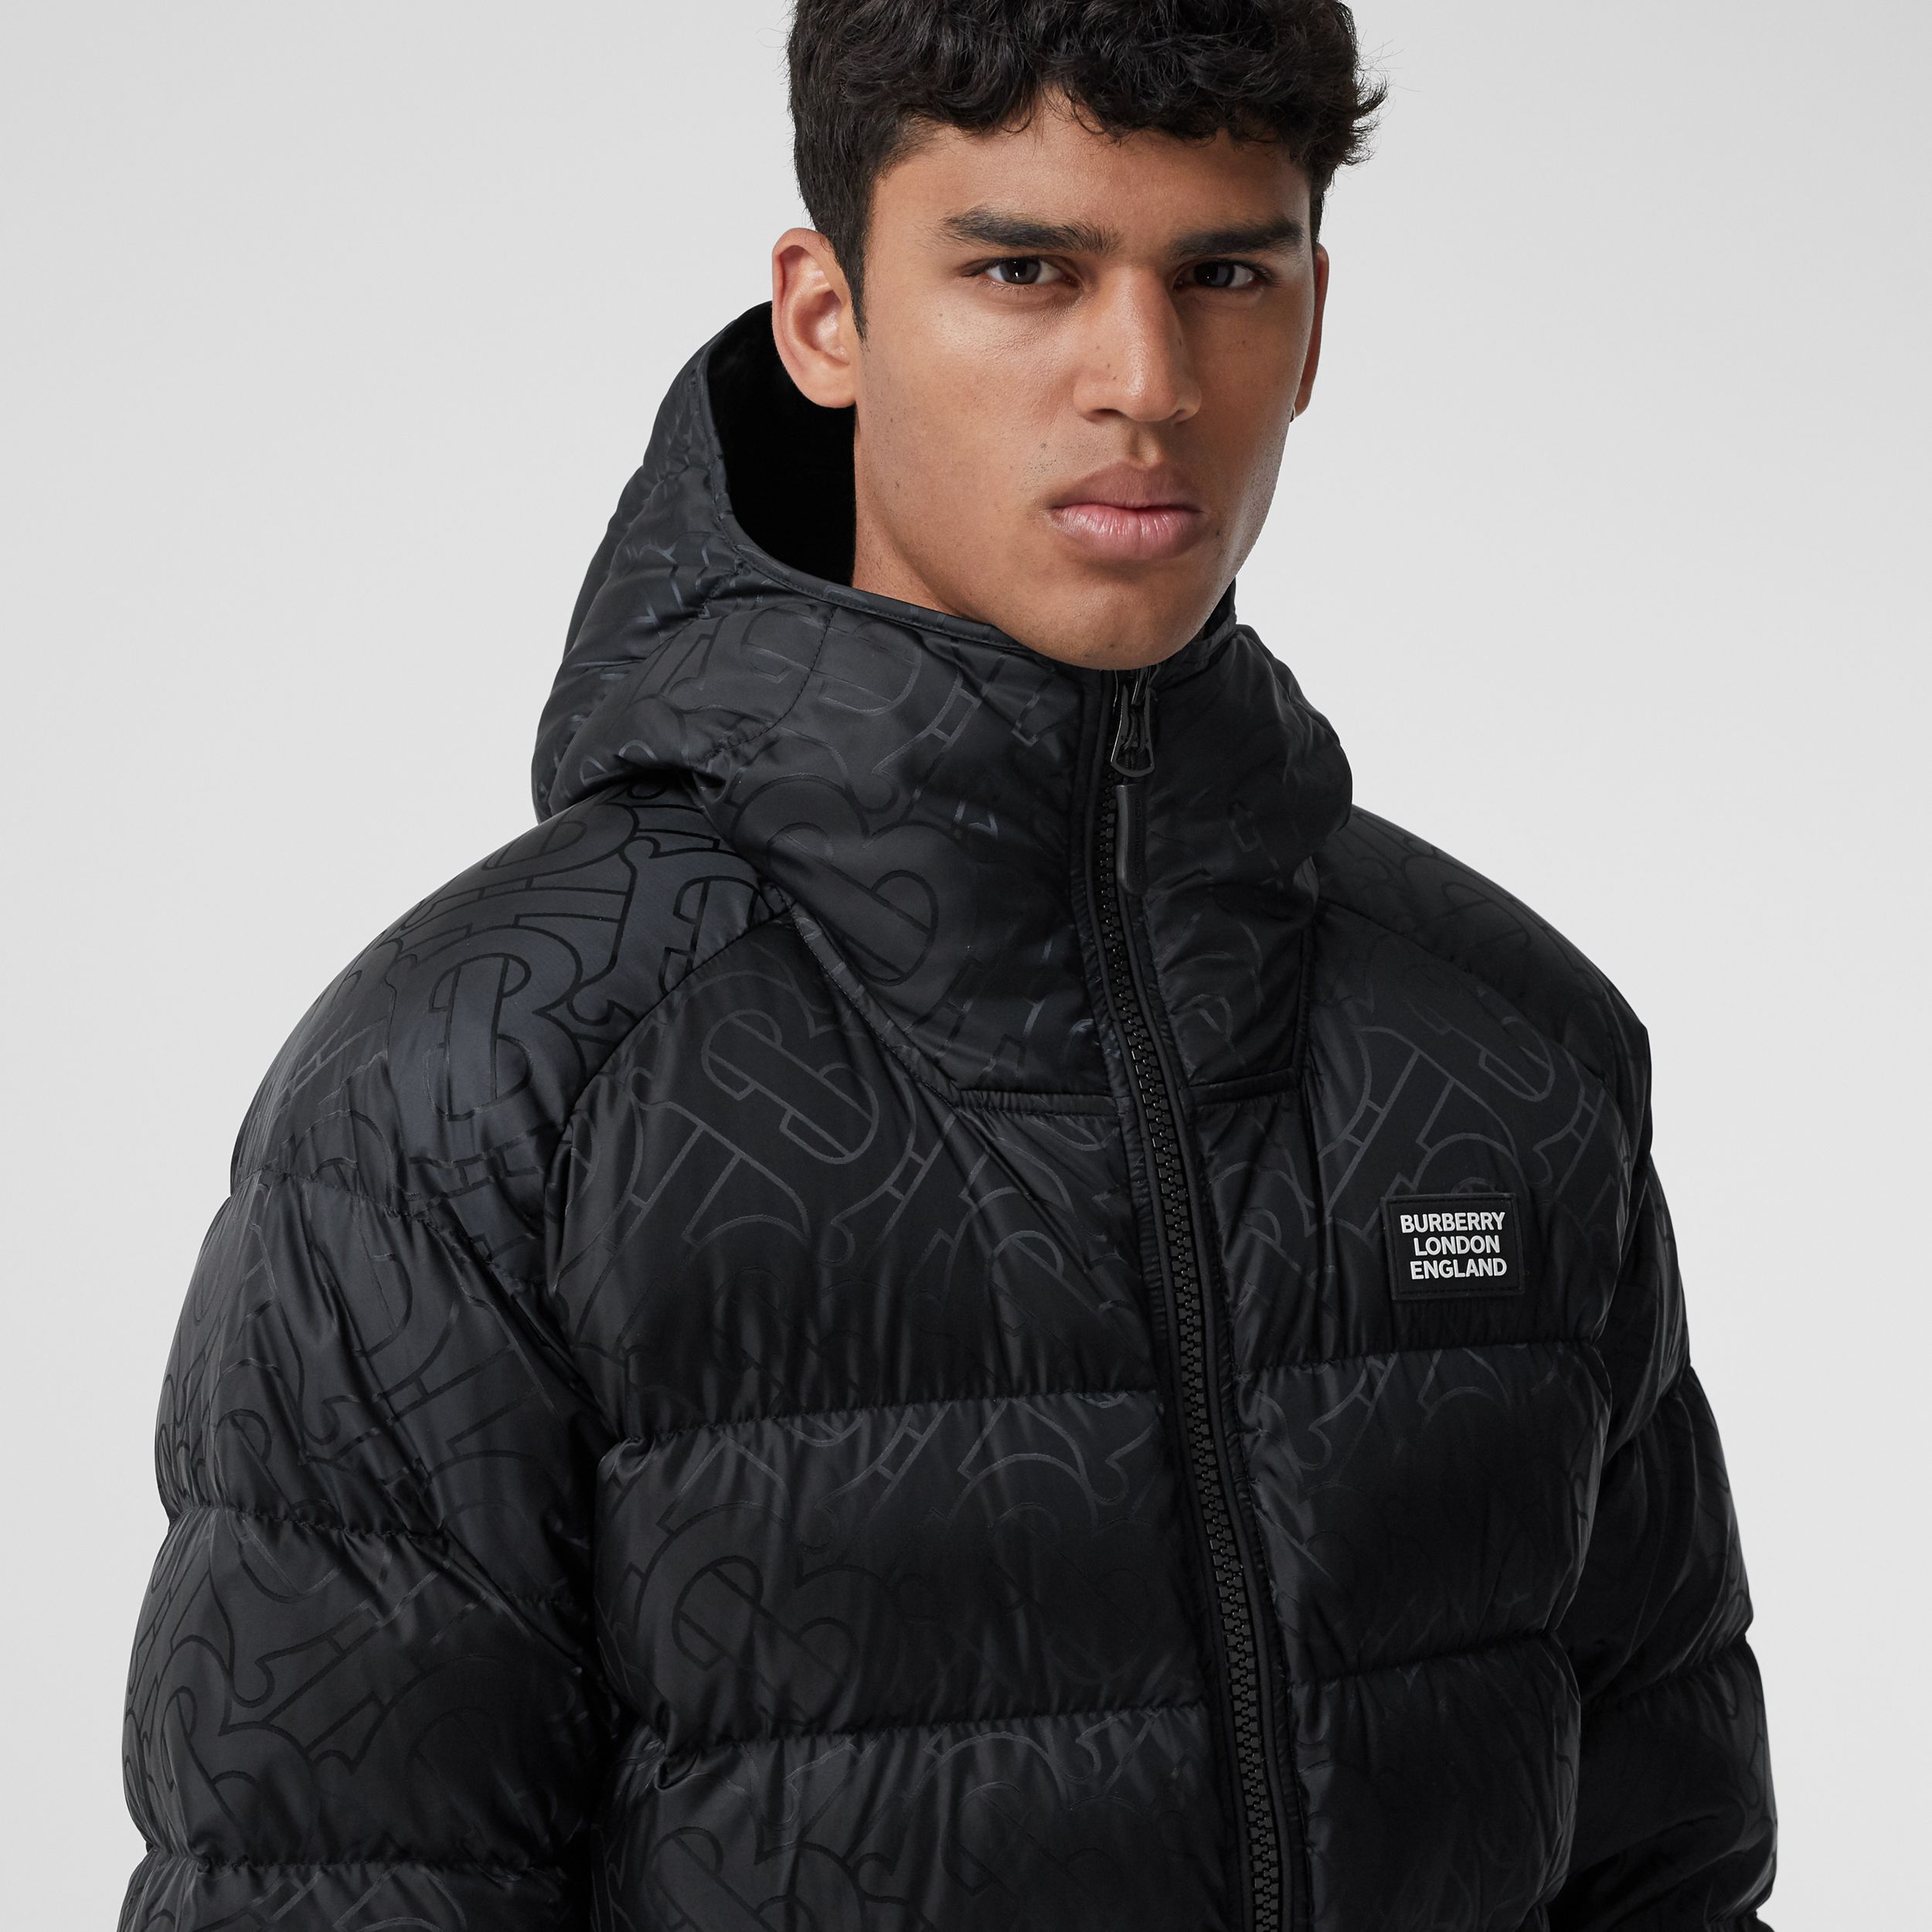 Monogram Jacquard Hooded Puffer Jacket in Black - Men | Burberry - 2